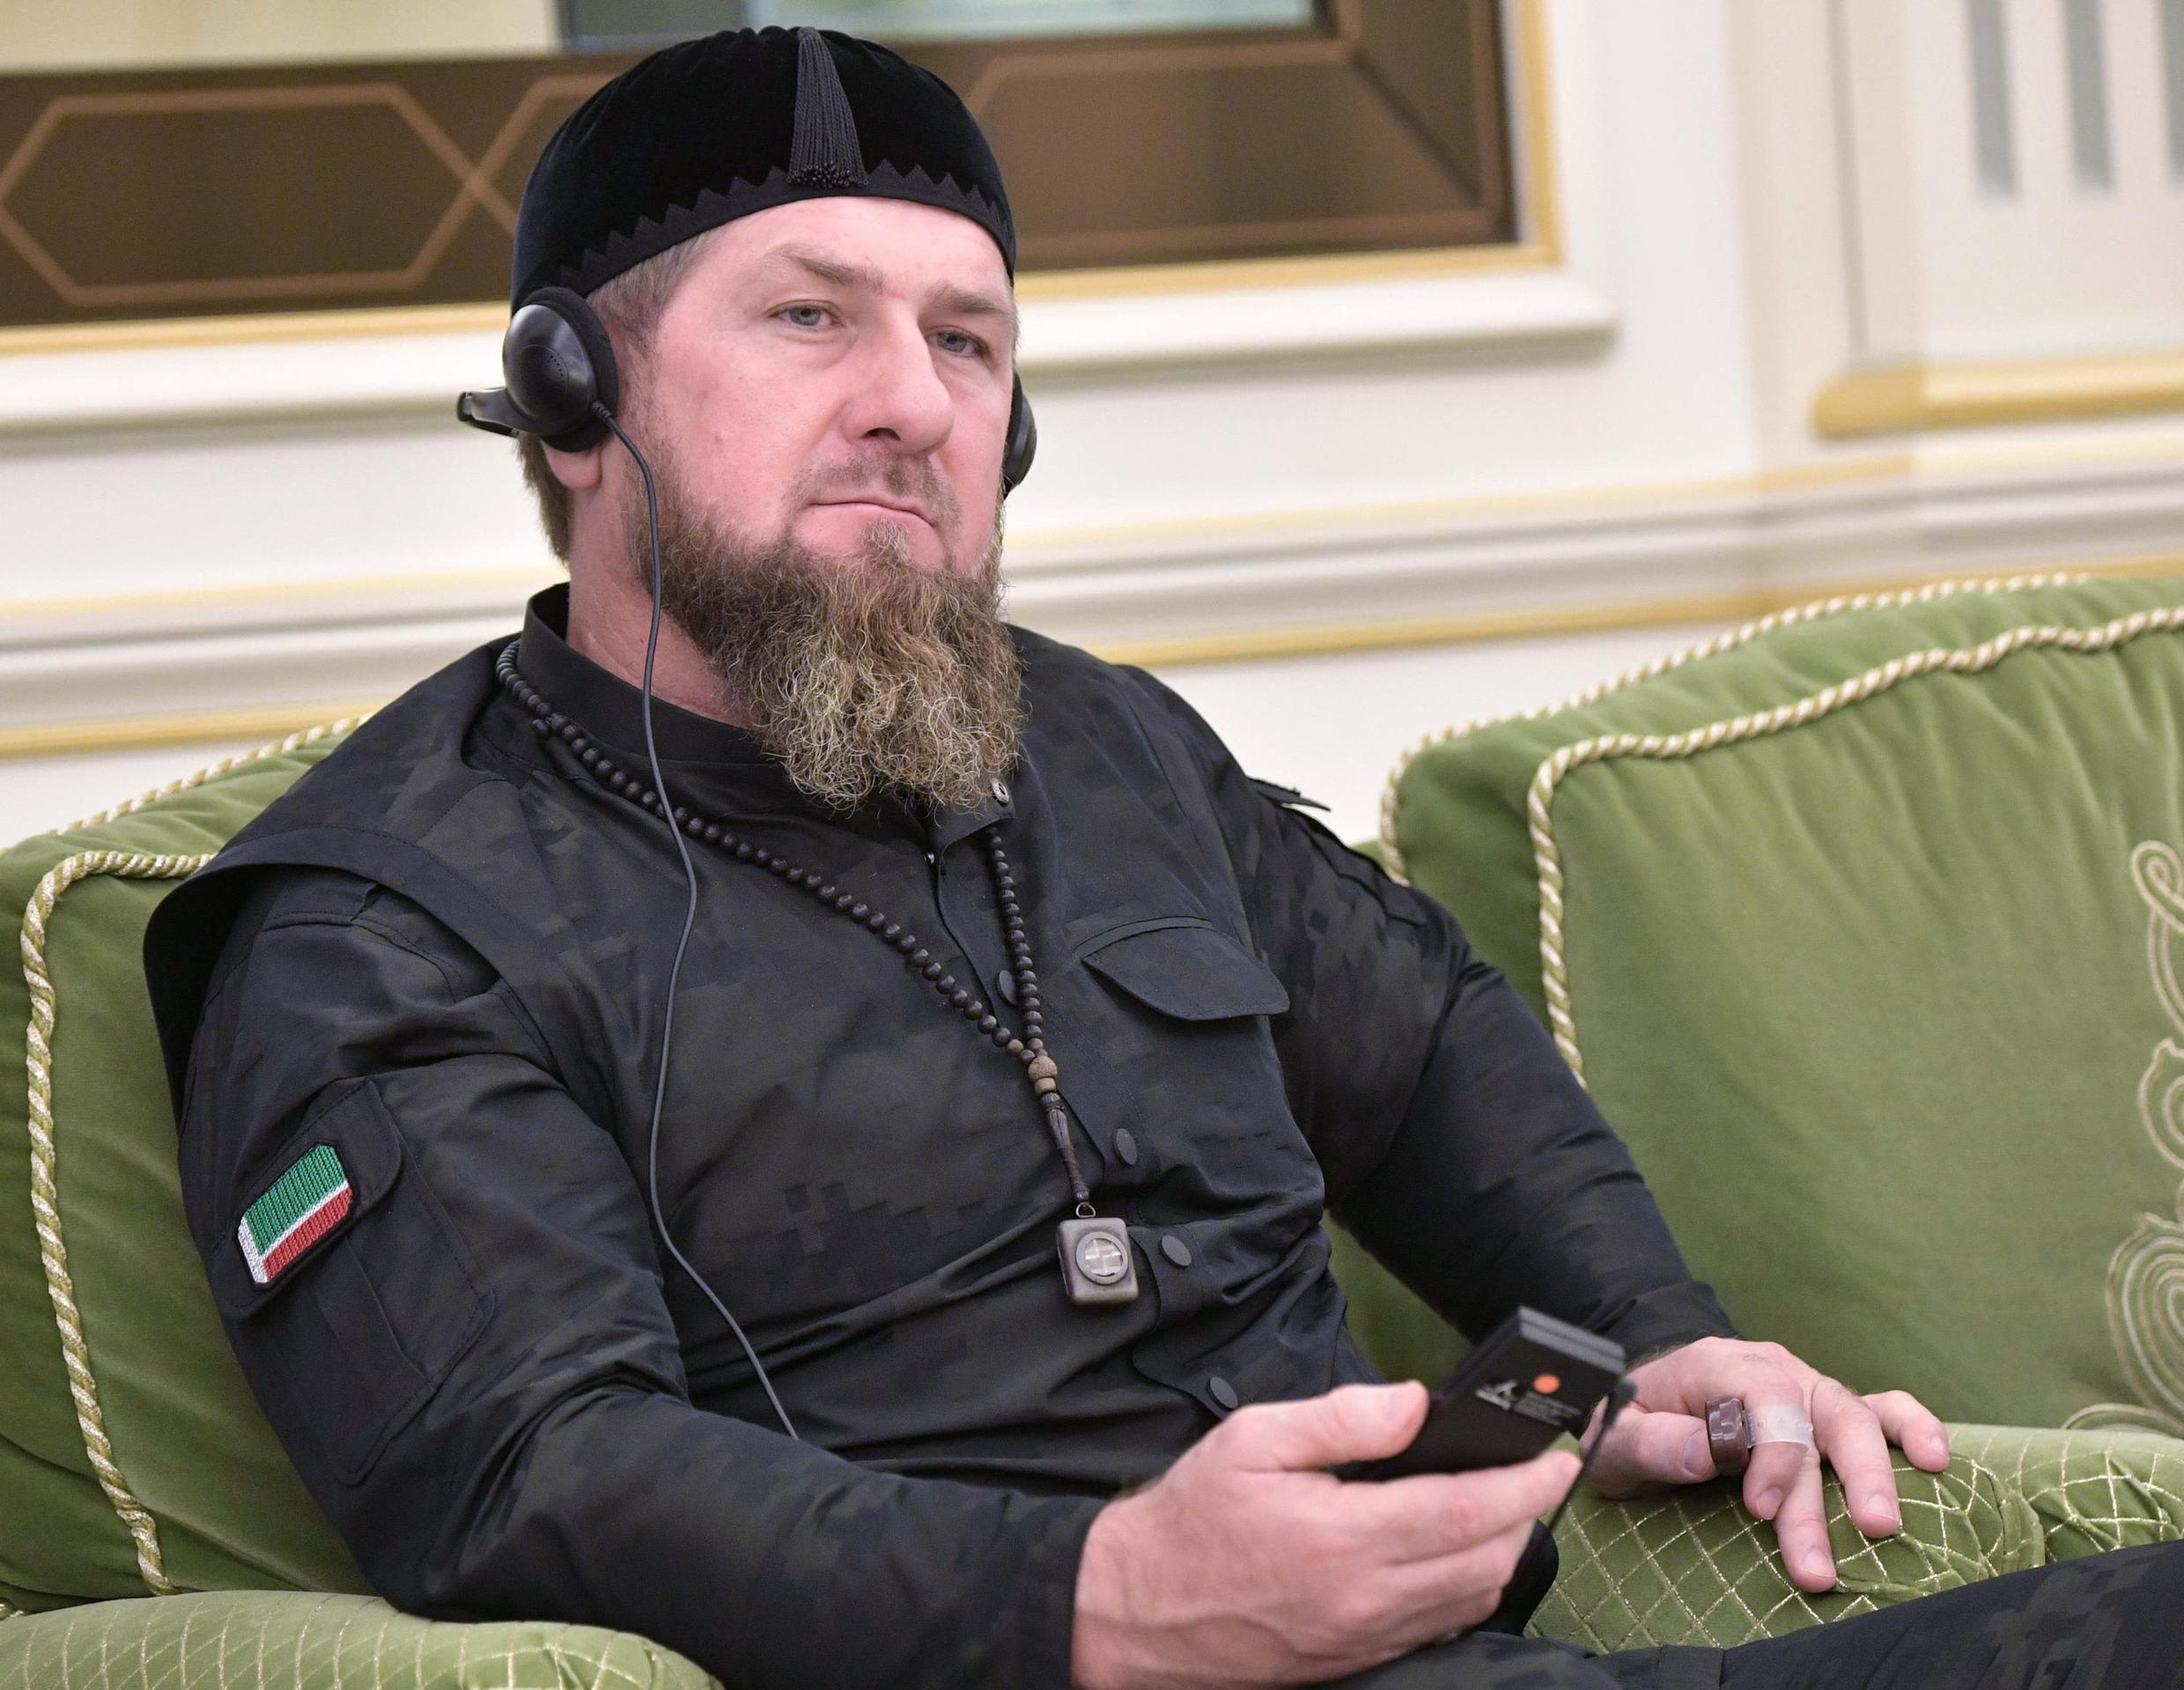 """Chechen leader Ramzan Kadyrov said unrest in involving his compatriots in Dijon was caused by aggression from """"drug dealers"""" and police inaction over the assault of a Chechen teenager."""